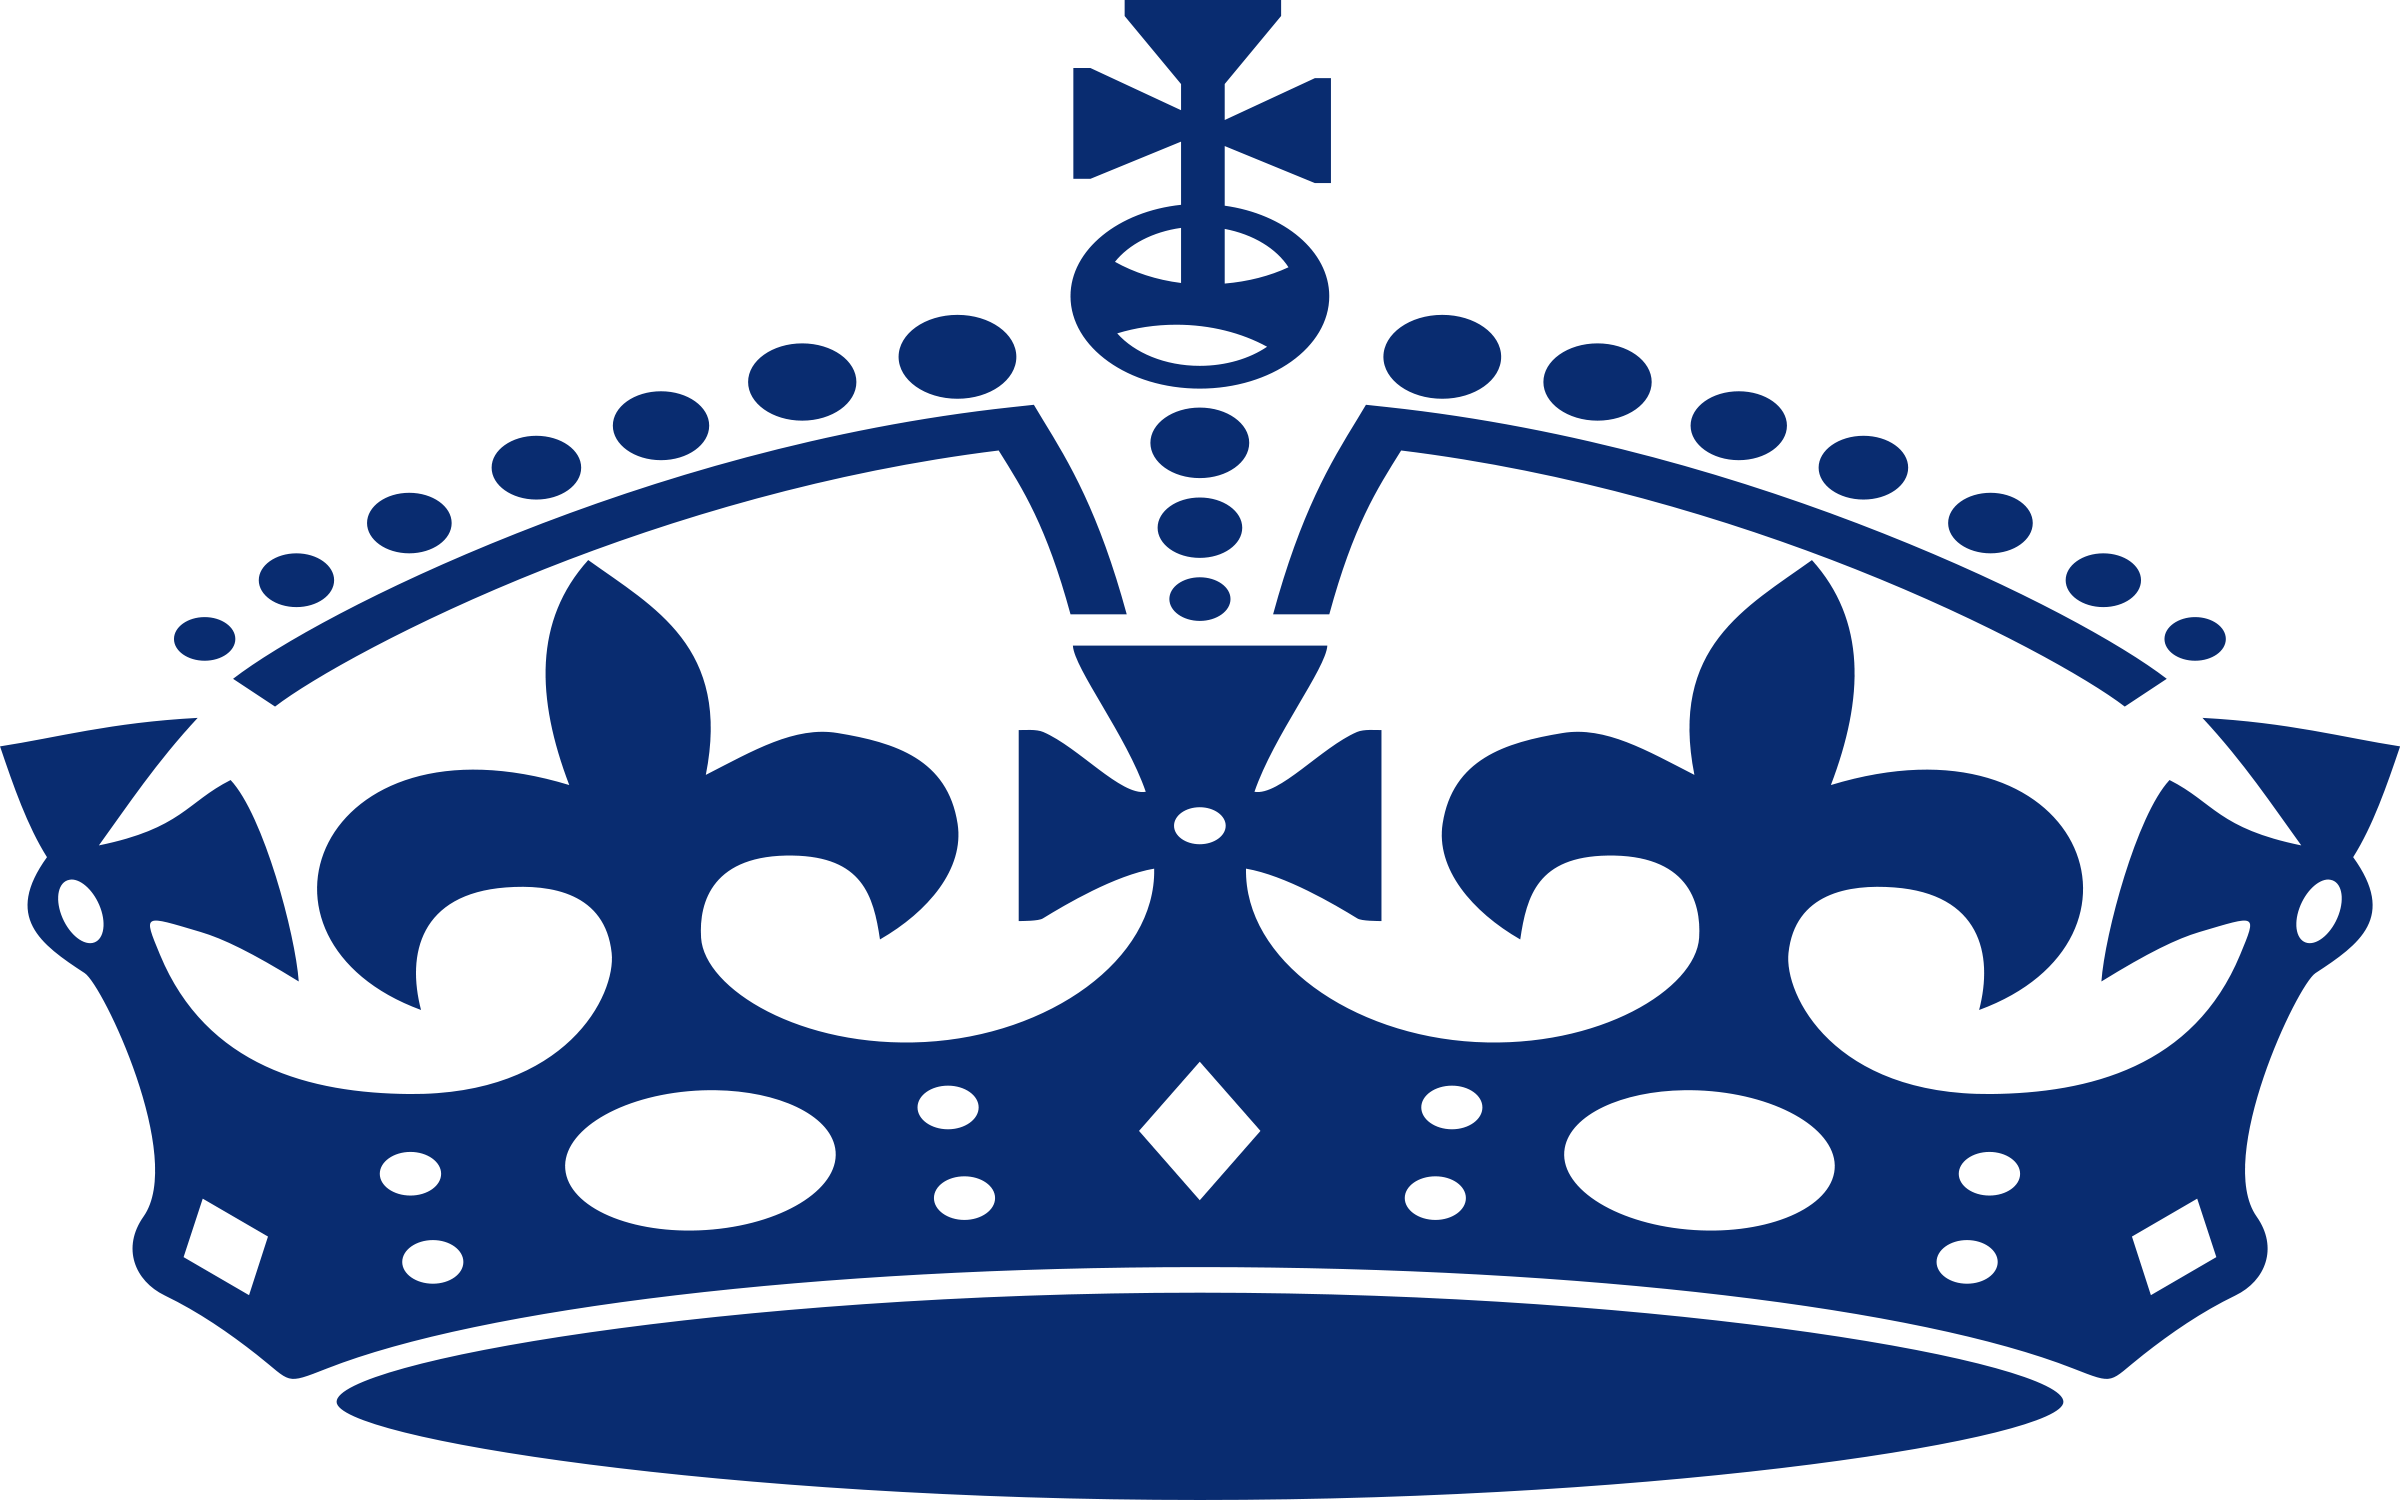 Crowns clipart royalty free.  collection of blue